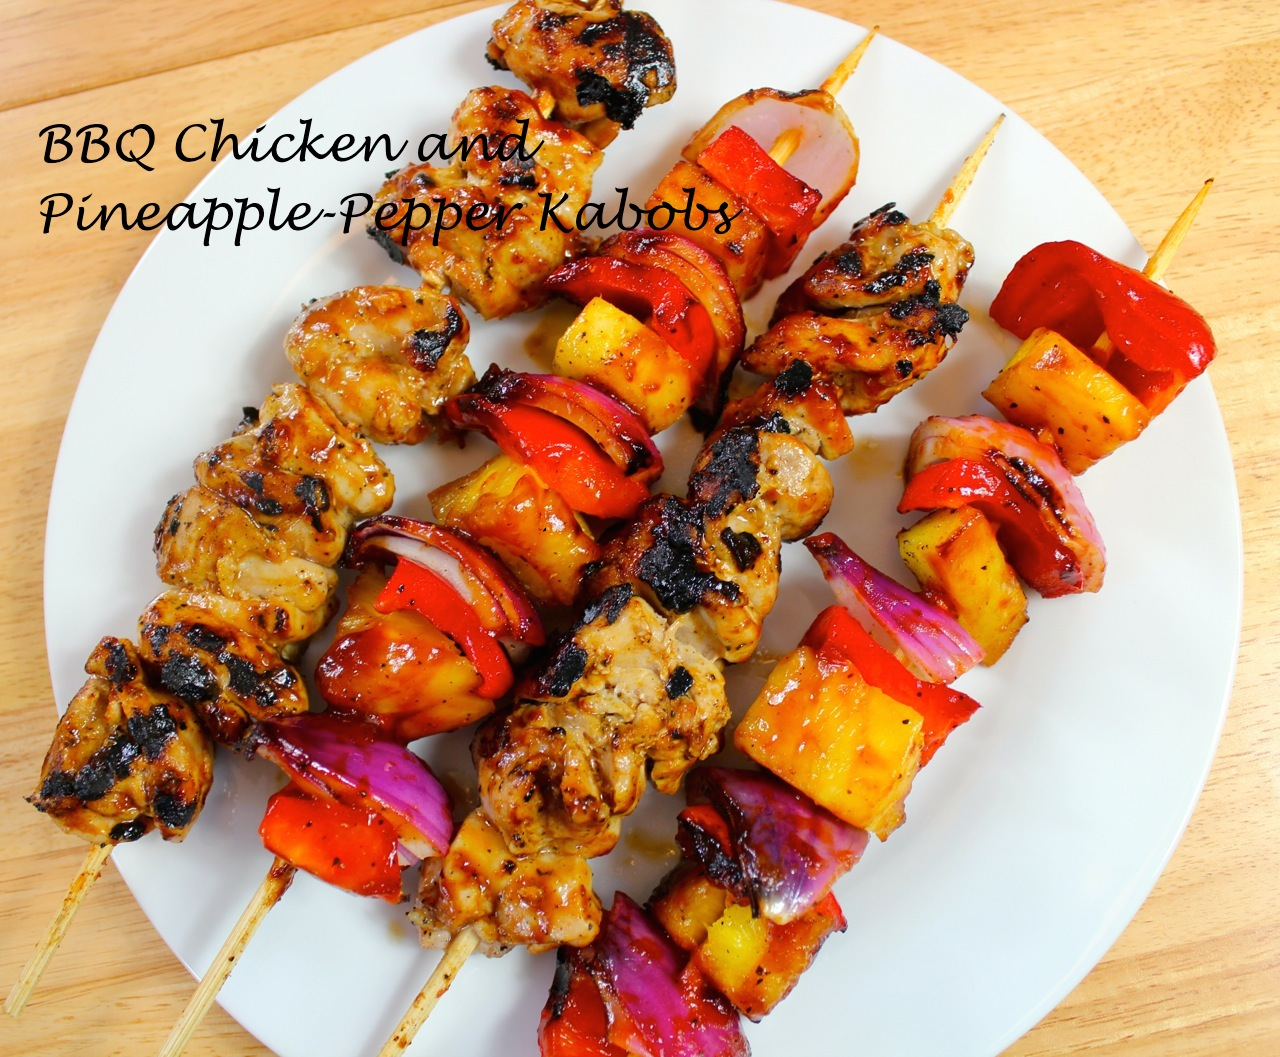 BBQ Chicken and Pineapple-Pepper Skewers | April McKinney